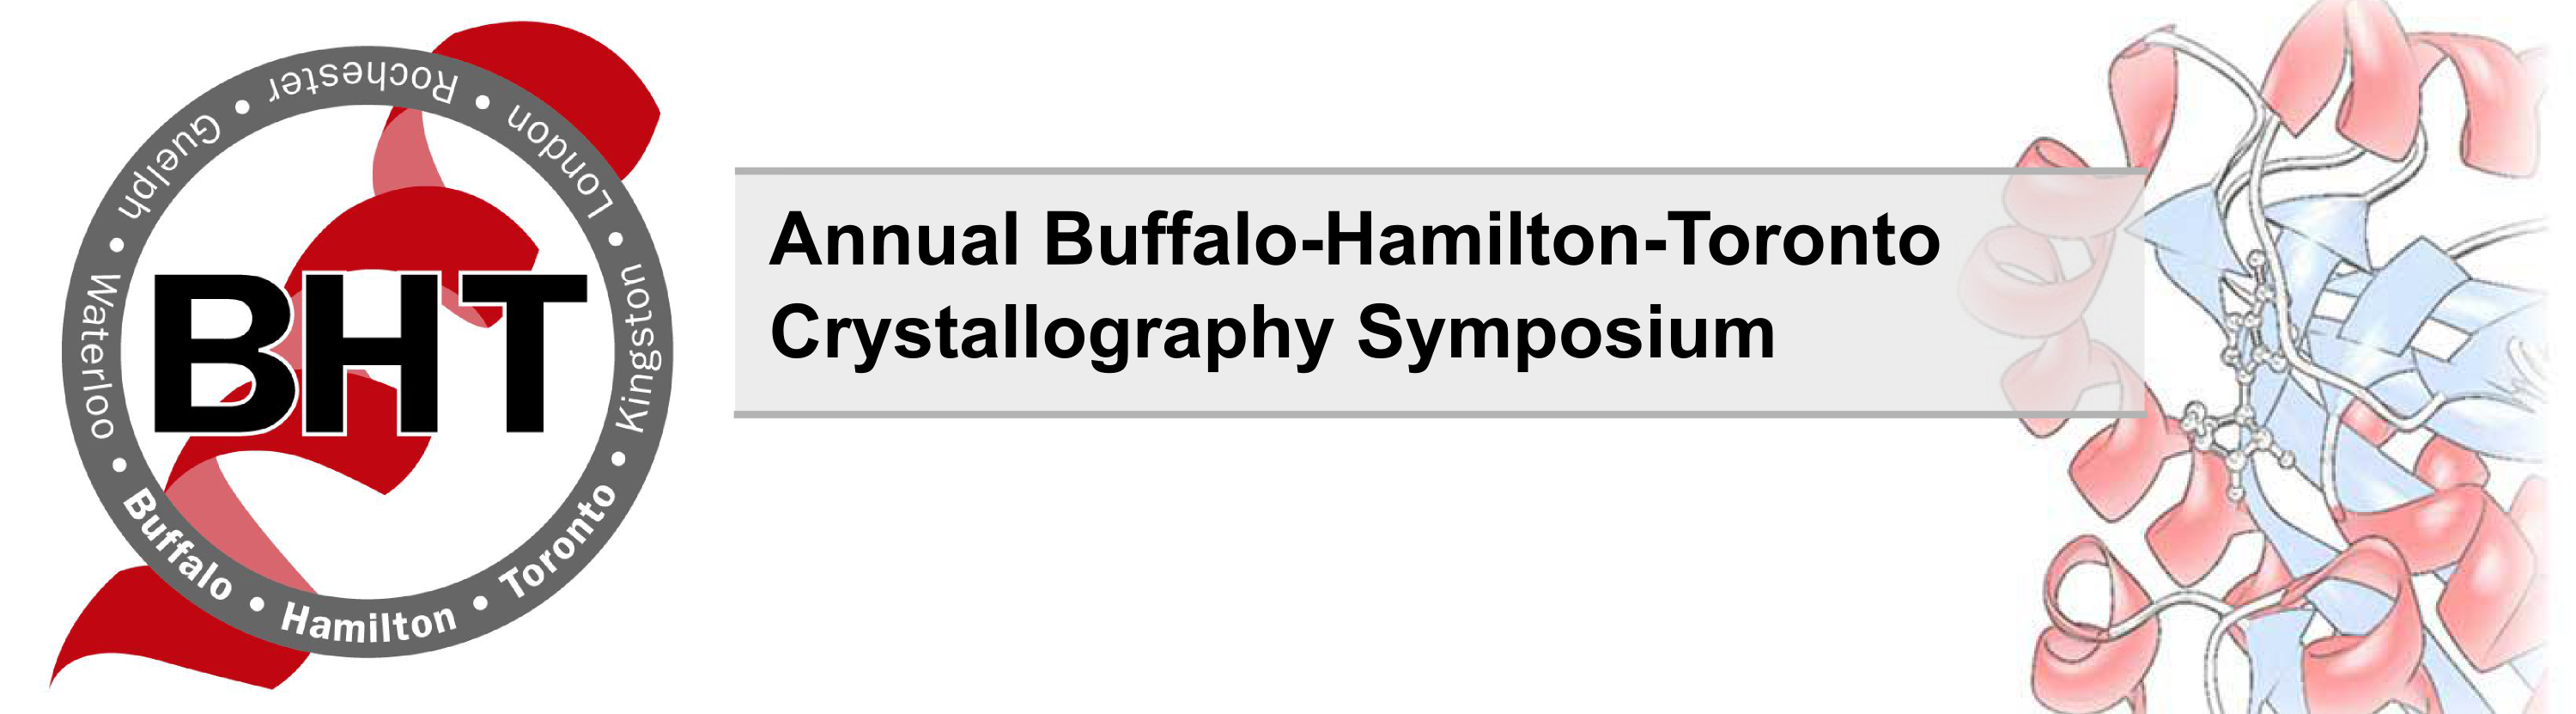 27th Annual Buffalo-Hamilton-Toronto (BHT) Crystallography Symposium